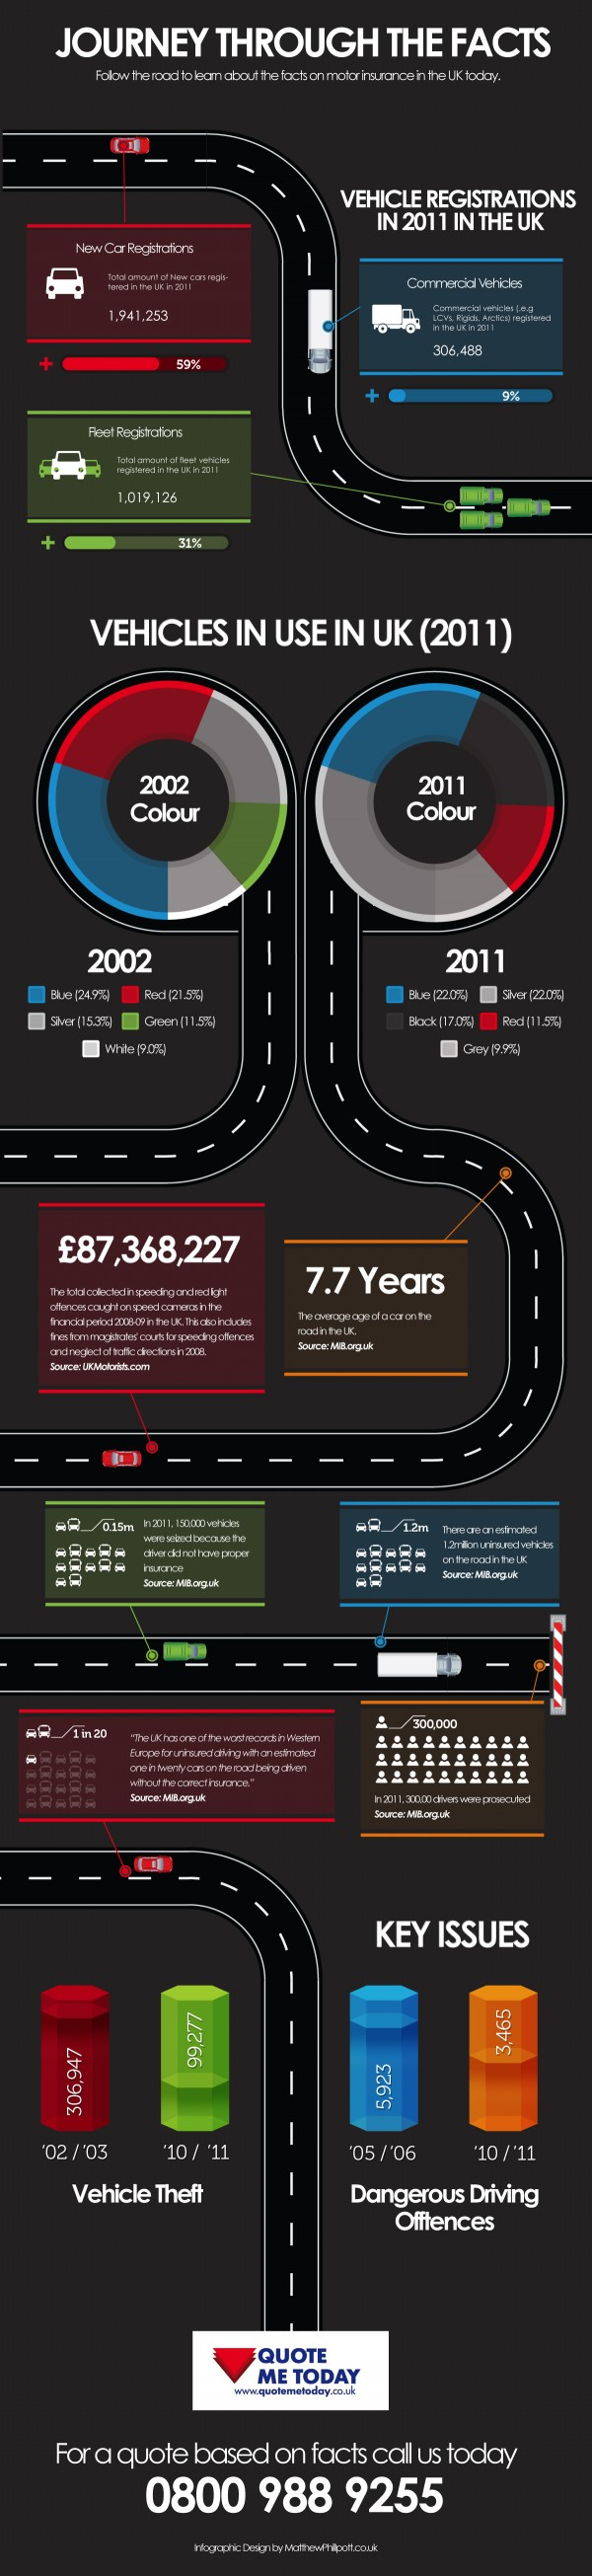 noid-journey-through-the-facts-infographic